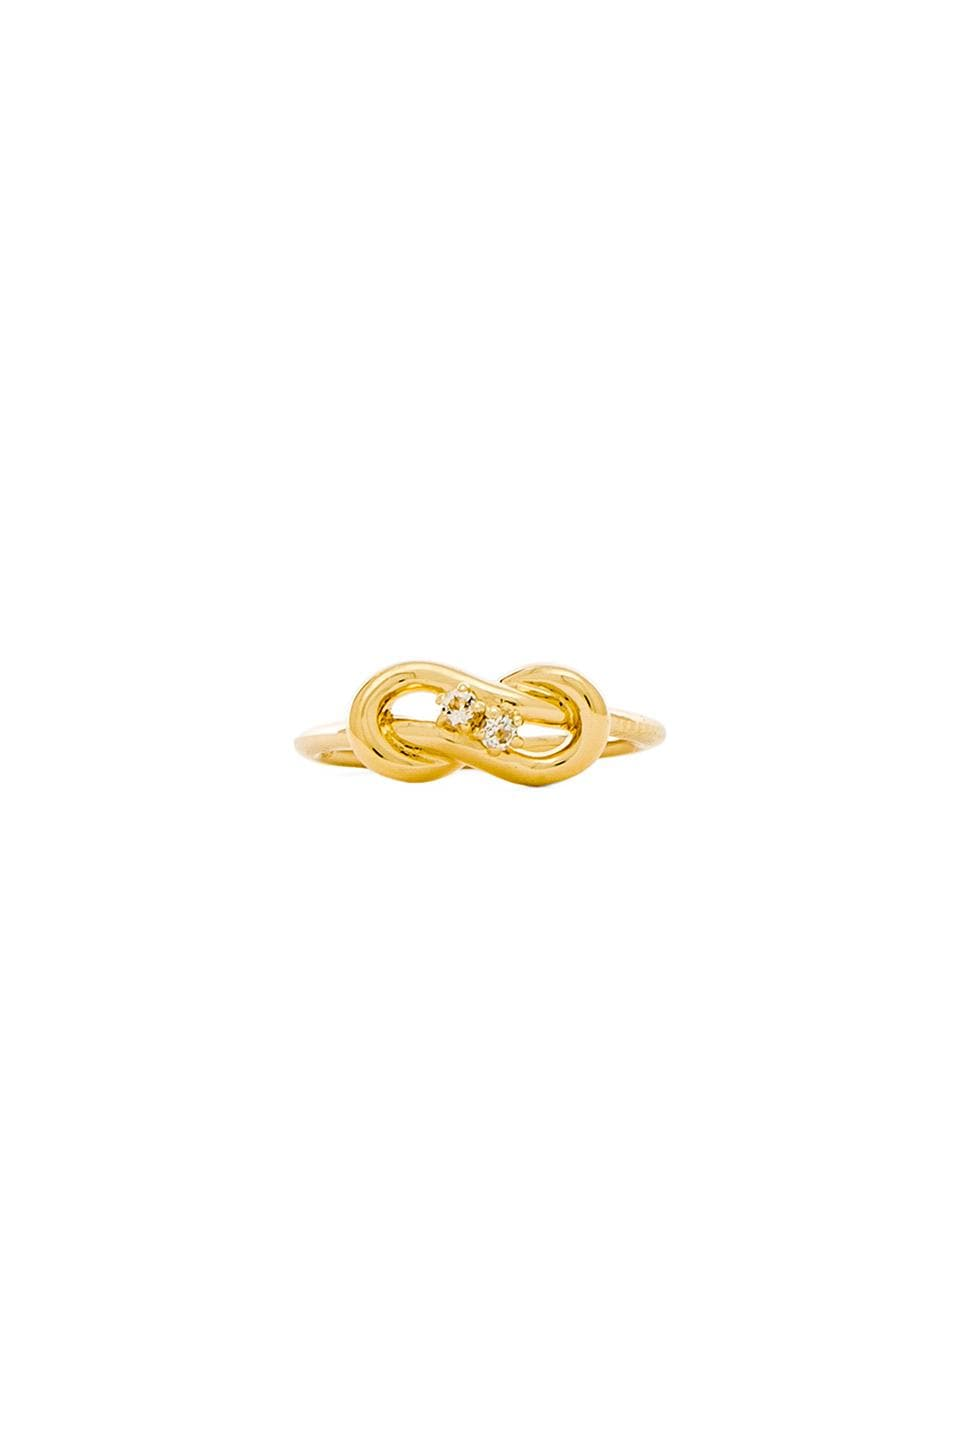 Elizabeth and James Catalan Ring in Yellow Gold